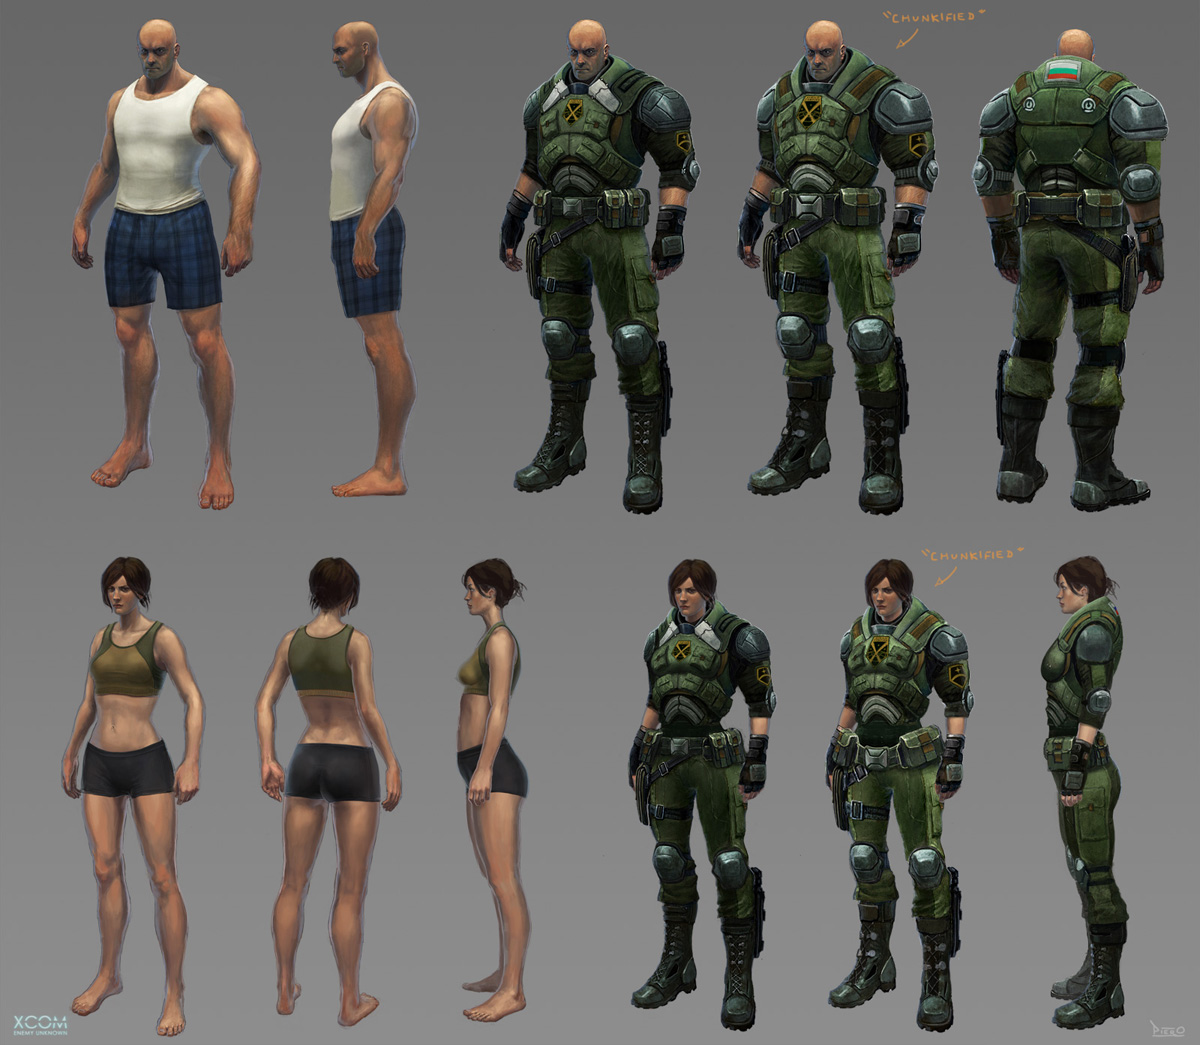 Xcom Enemy Within Concept Art - Viewing Gallery